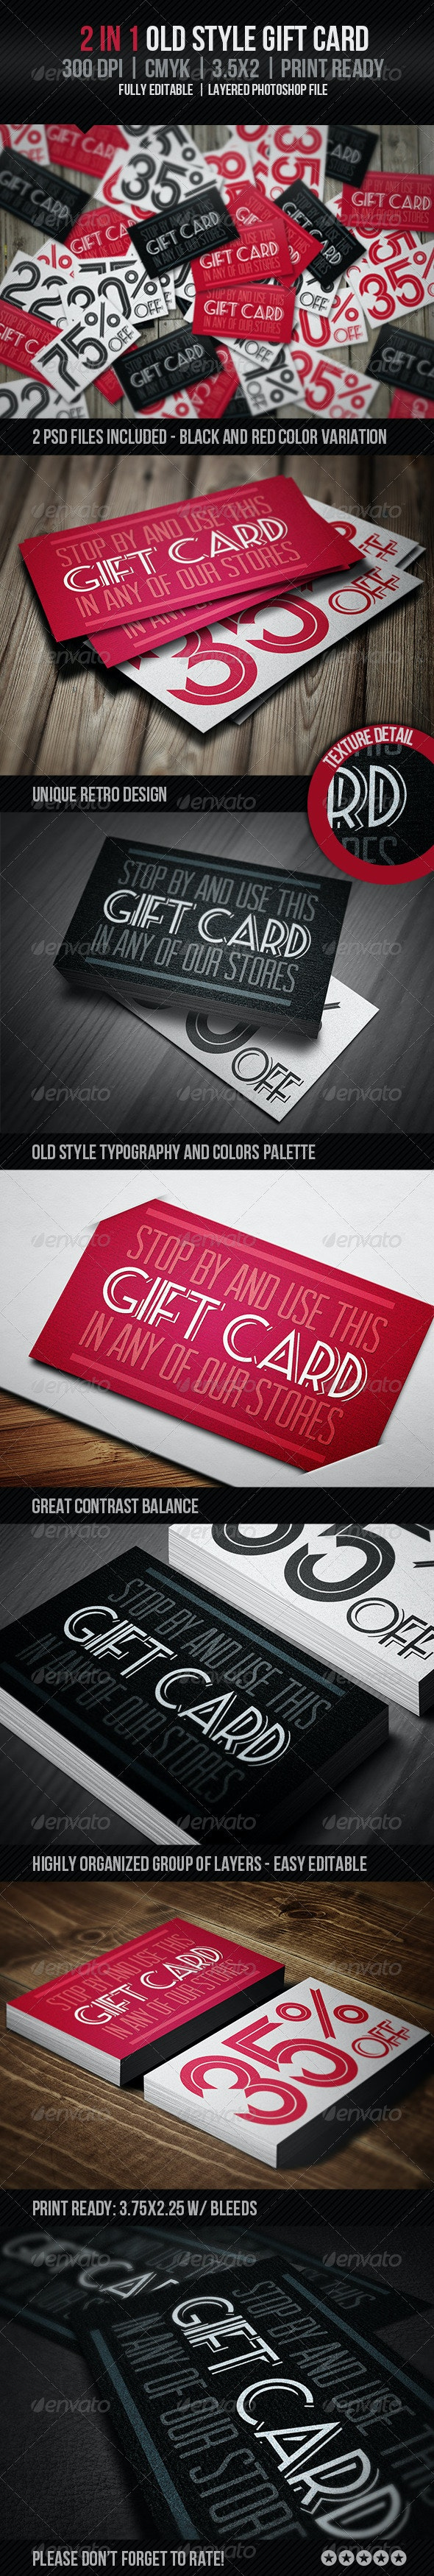 Old Style Gift Card - Cards & Invites Print Templates